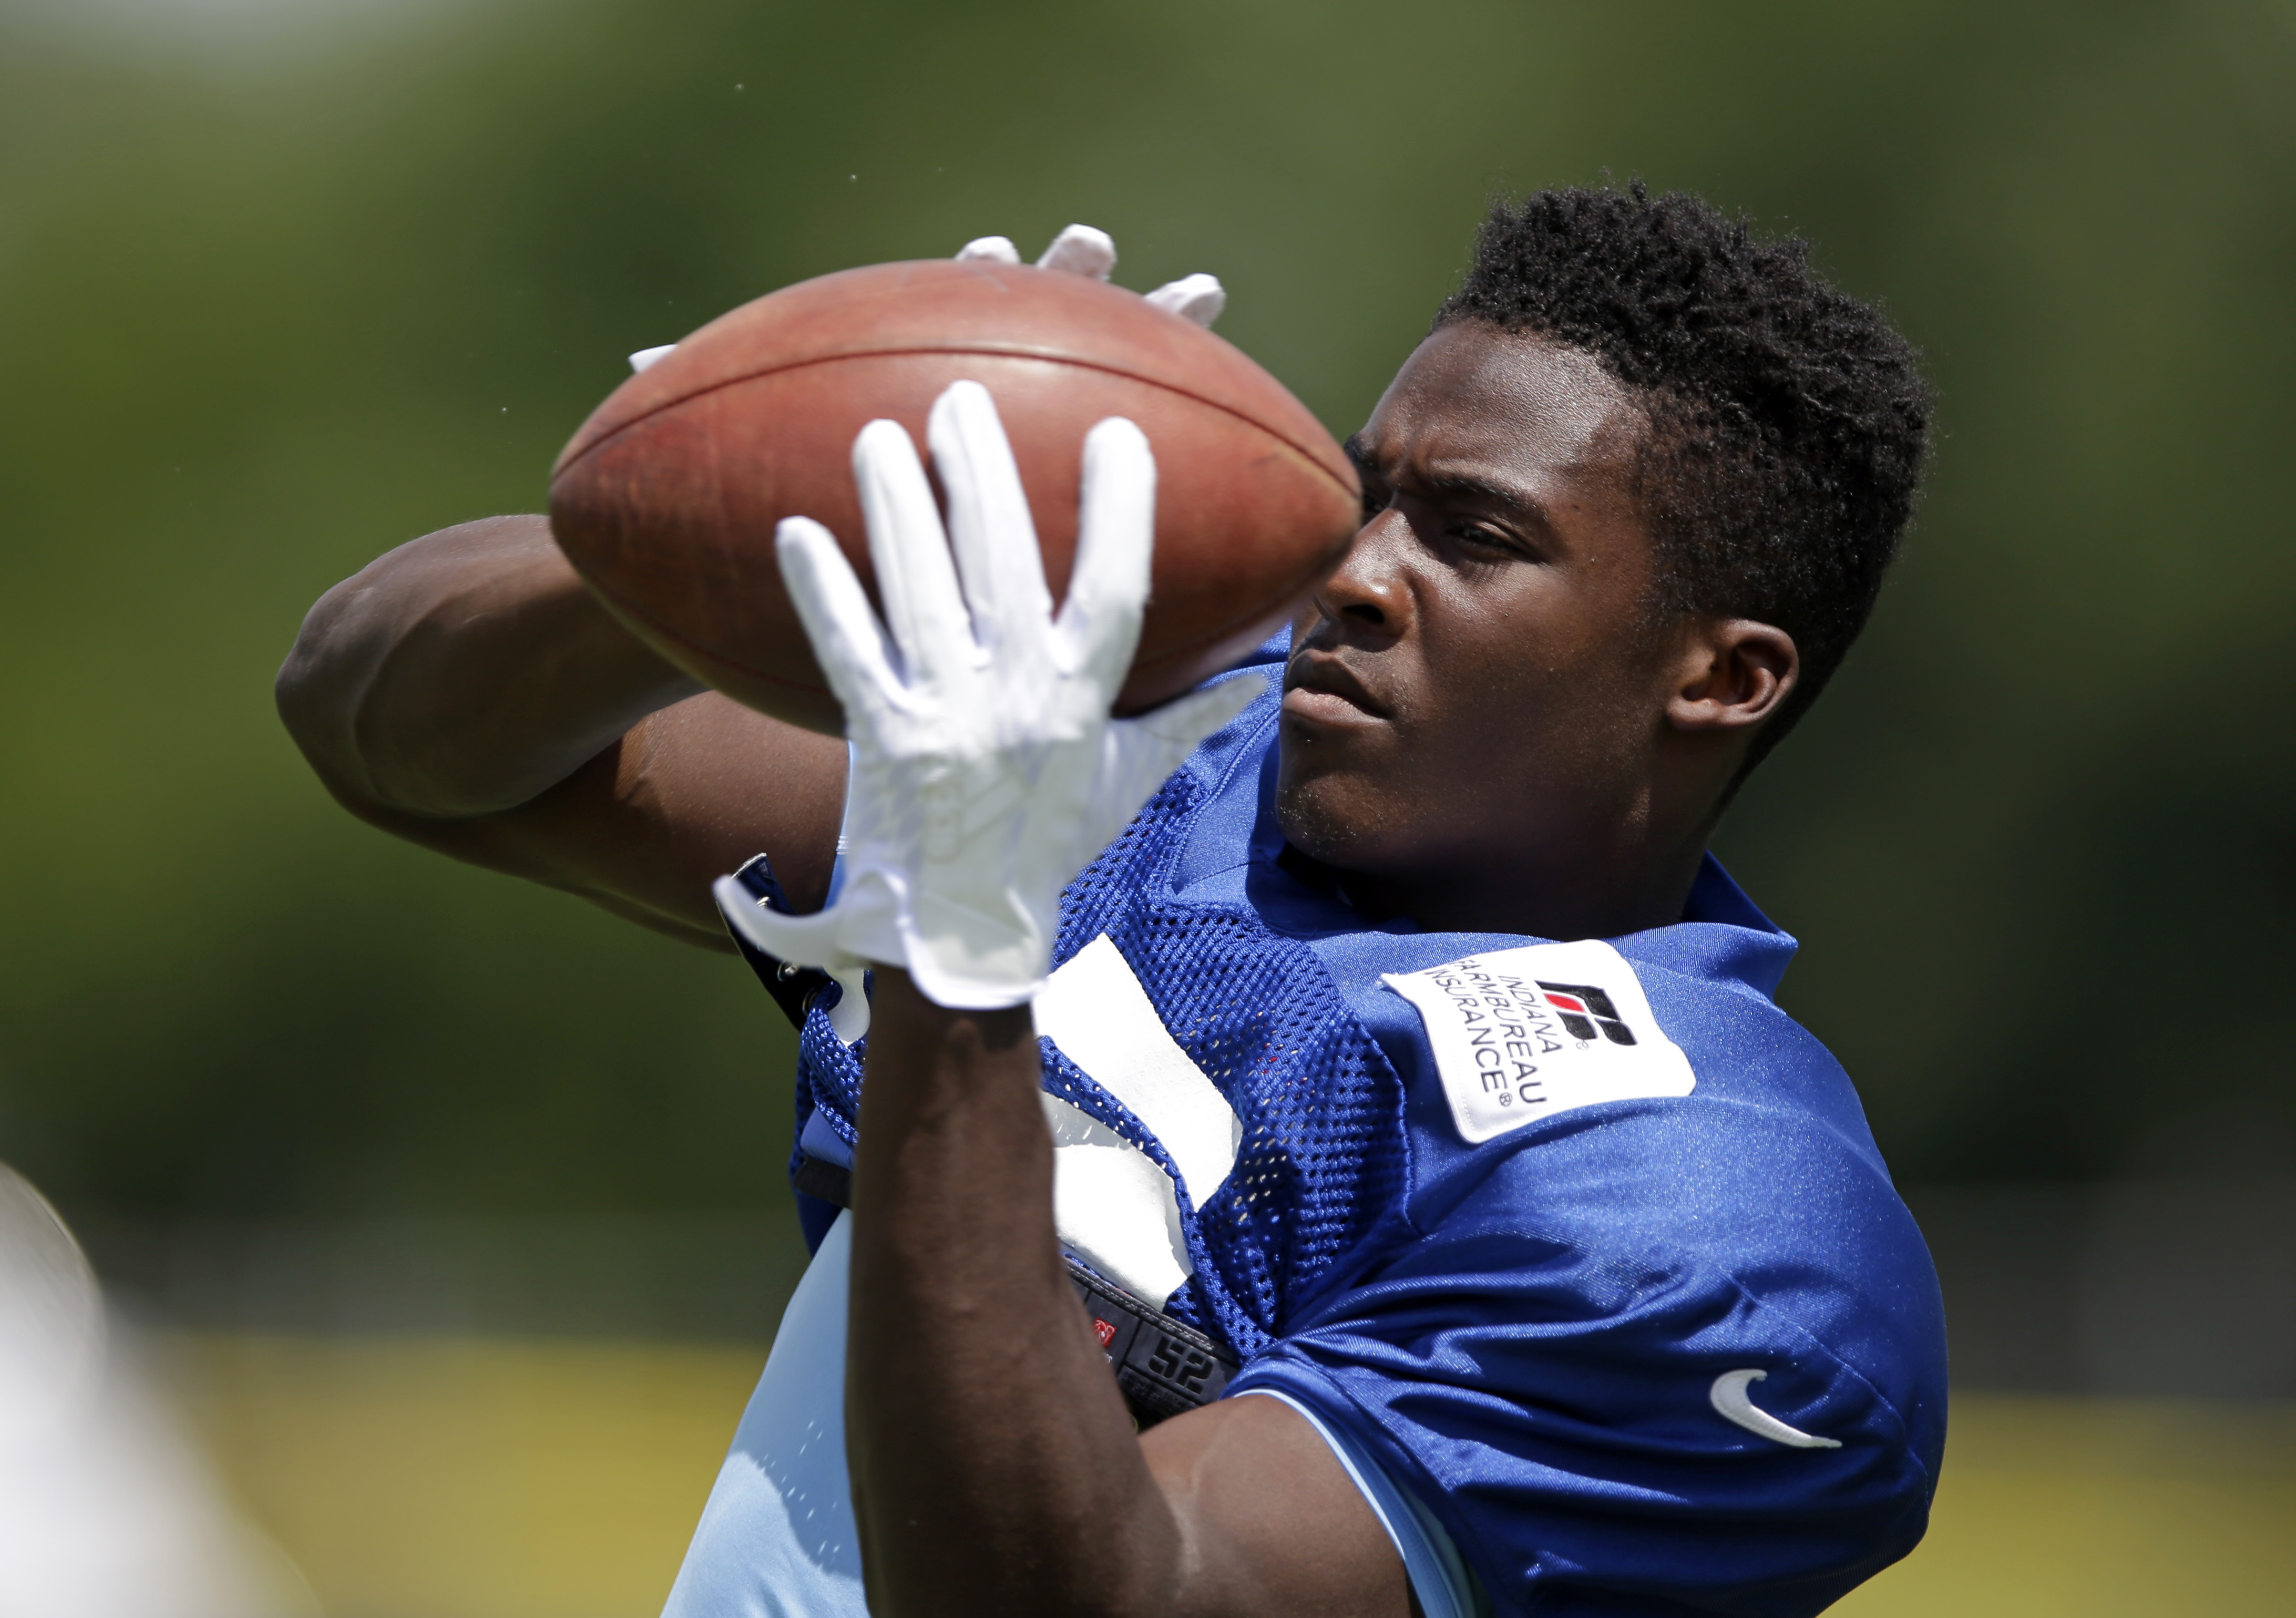 Indianapolis Colts wide receiver Phillip Dorsett (15) makes a catch during NFL football training camp in Anderson, Ind., Tuesday, Aug. 4, 2015.  (AP Photo/Michael Conroy)